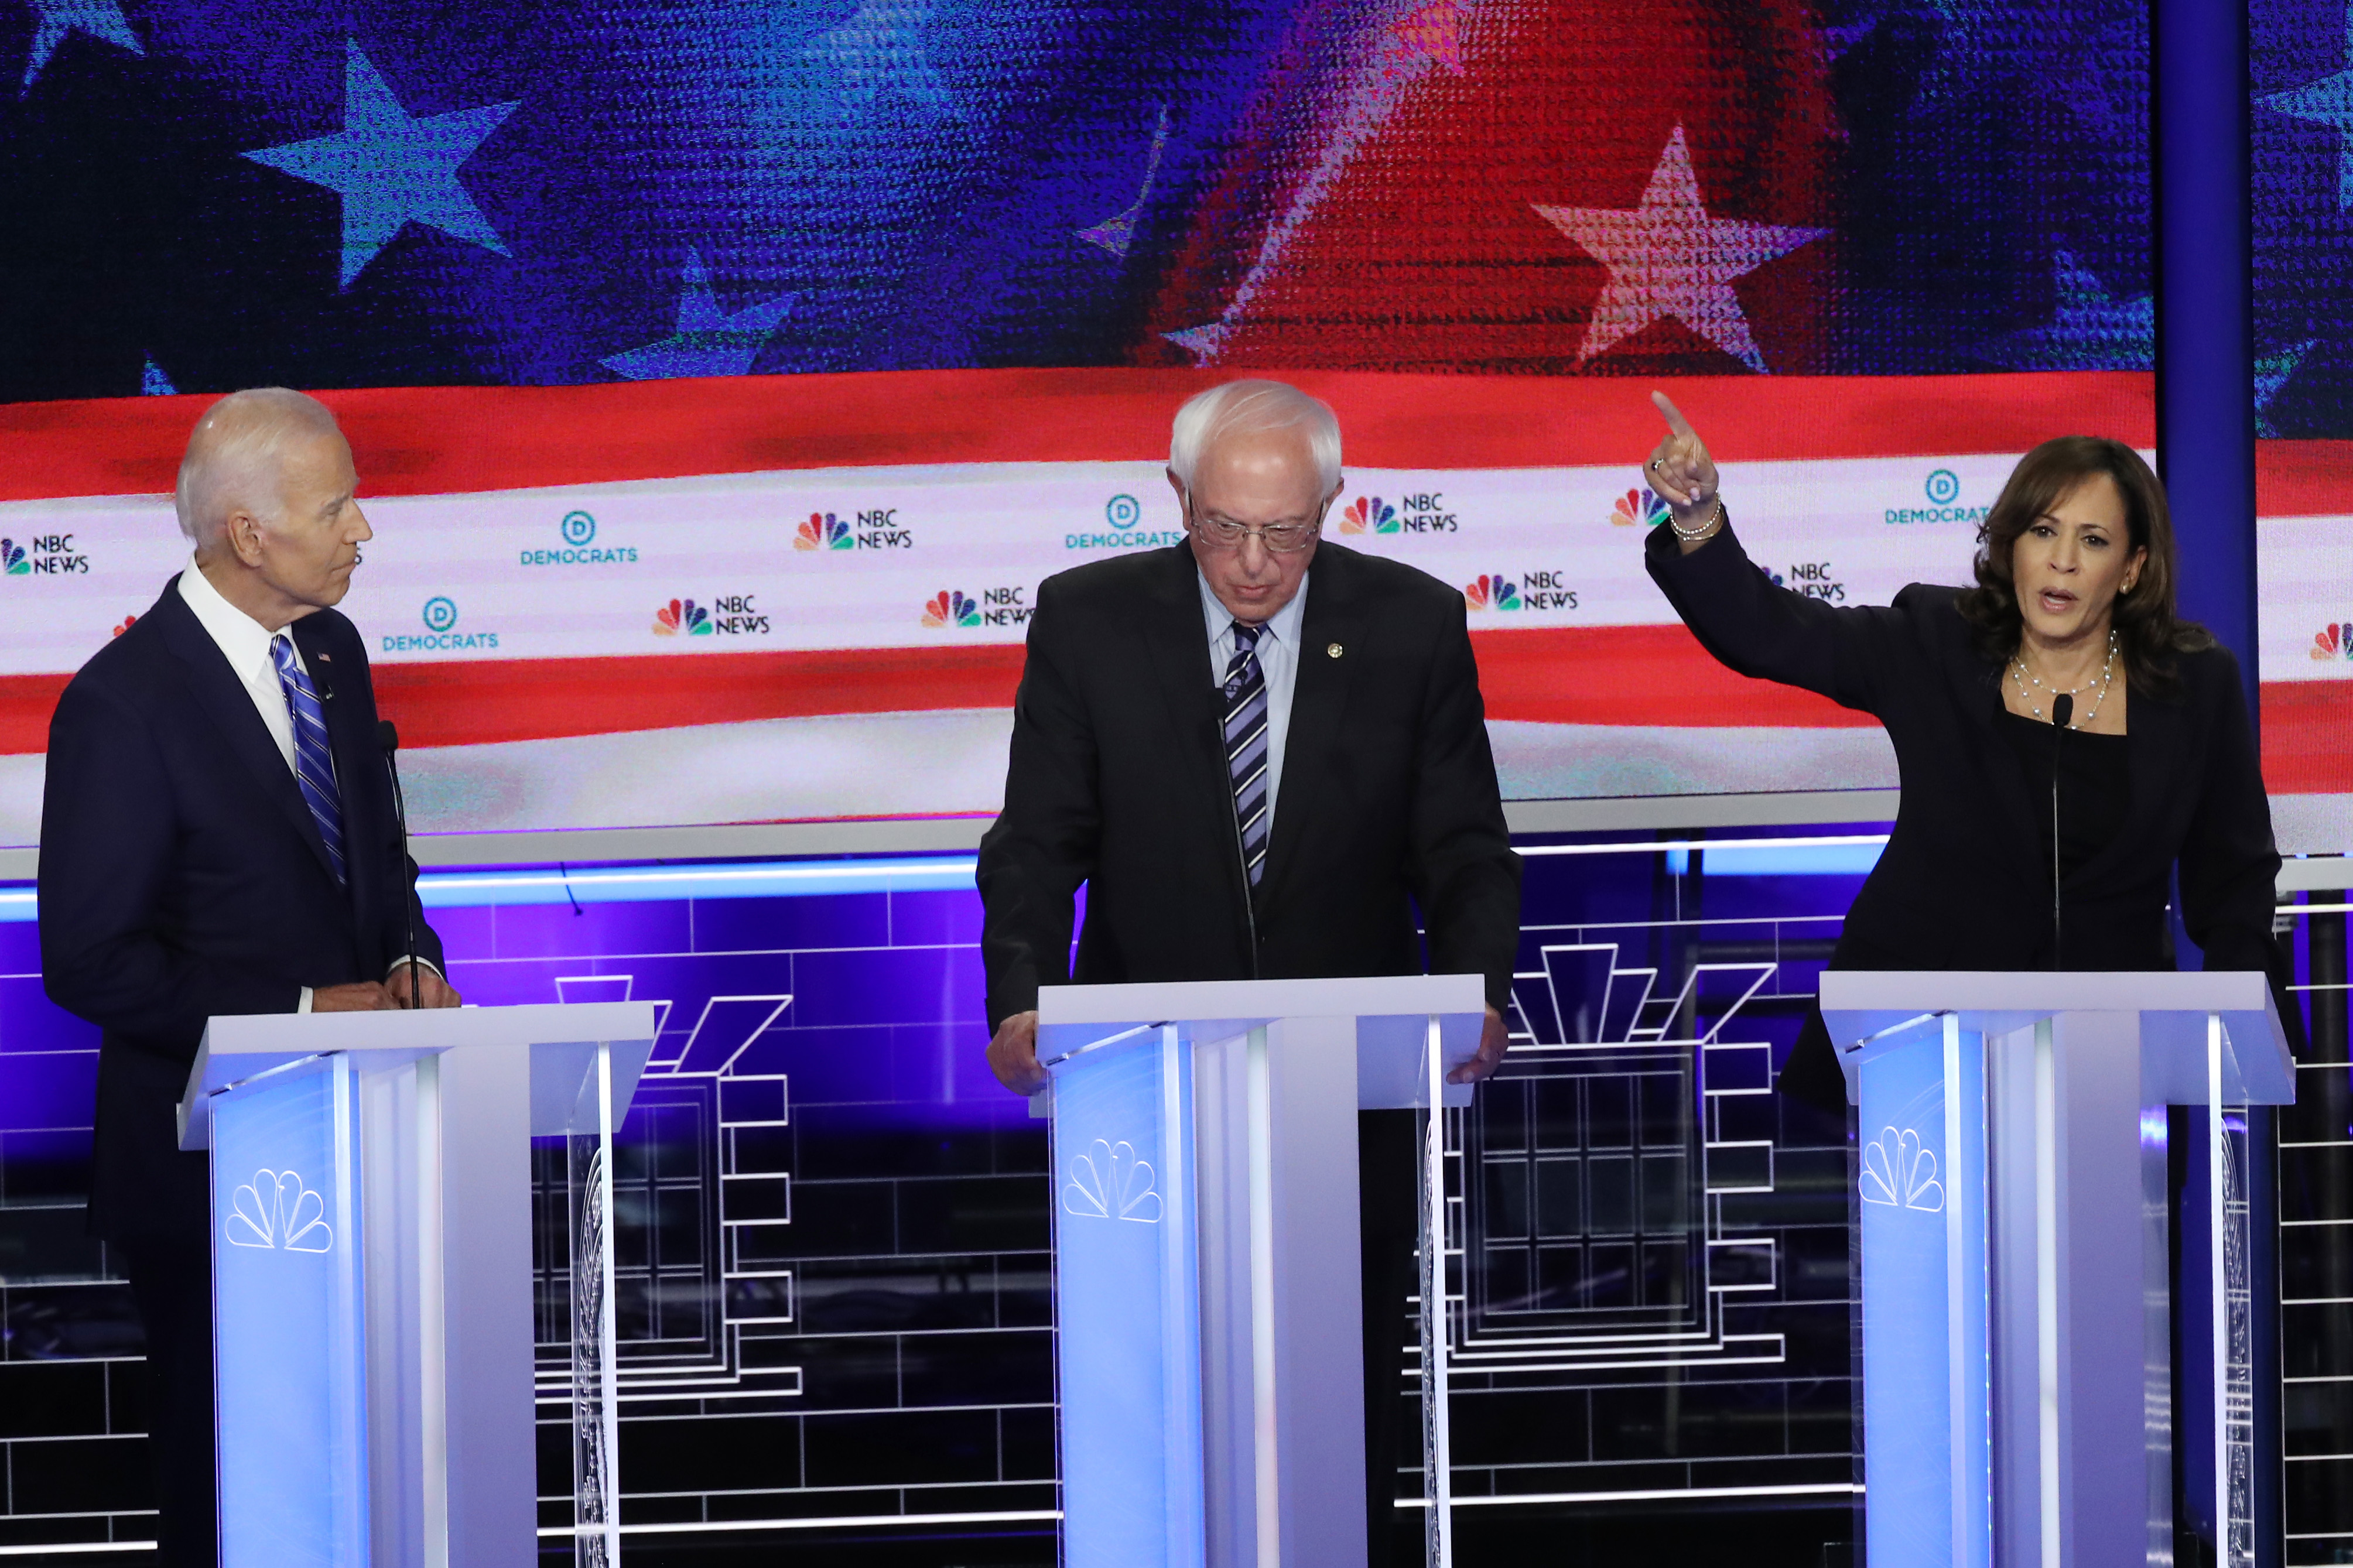 MIAMI, FLORIDA - JUNE 27: Sen. Kamala Harris (D-CA) speaks as Sen. Bernie Sanders (C) (I-VT) and former Vice President Joe Biden look on during the second night of the first Democratic presidential debate on June 27, 2019 in Miami, Florida. (Photo by Drew Angerer/Getty Images)